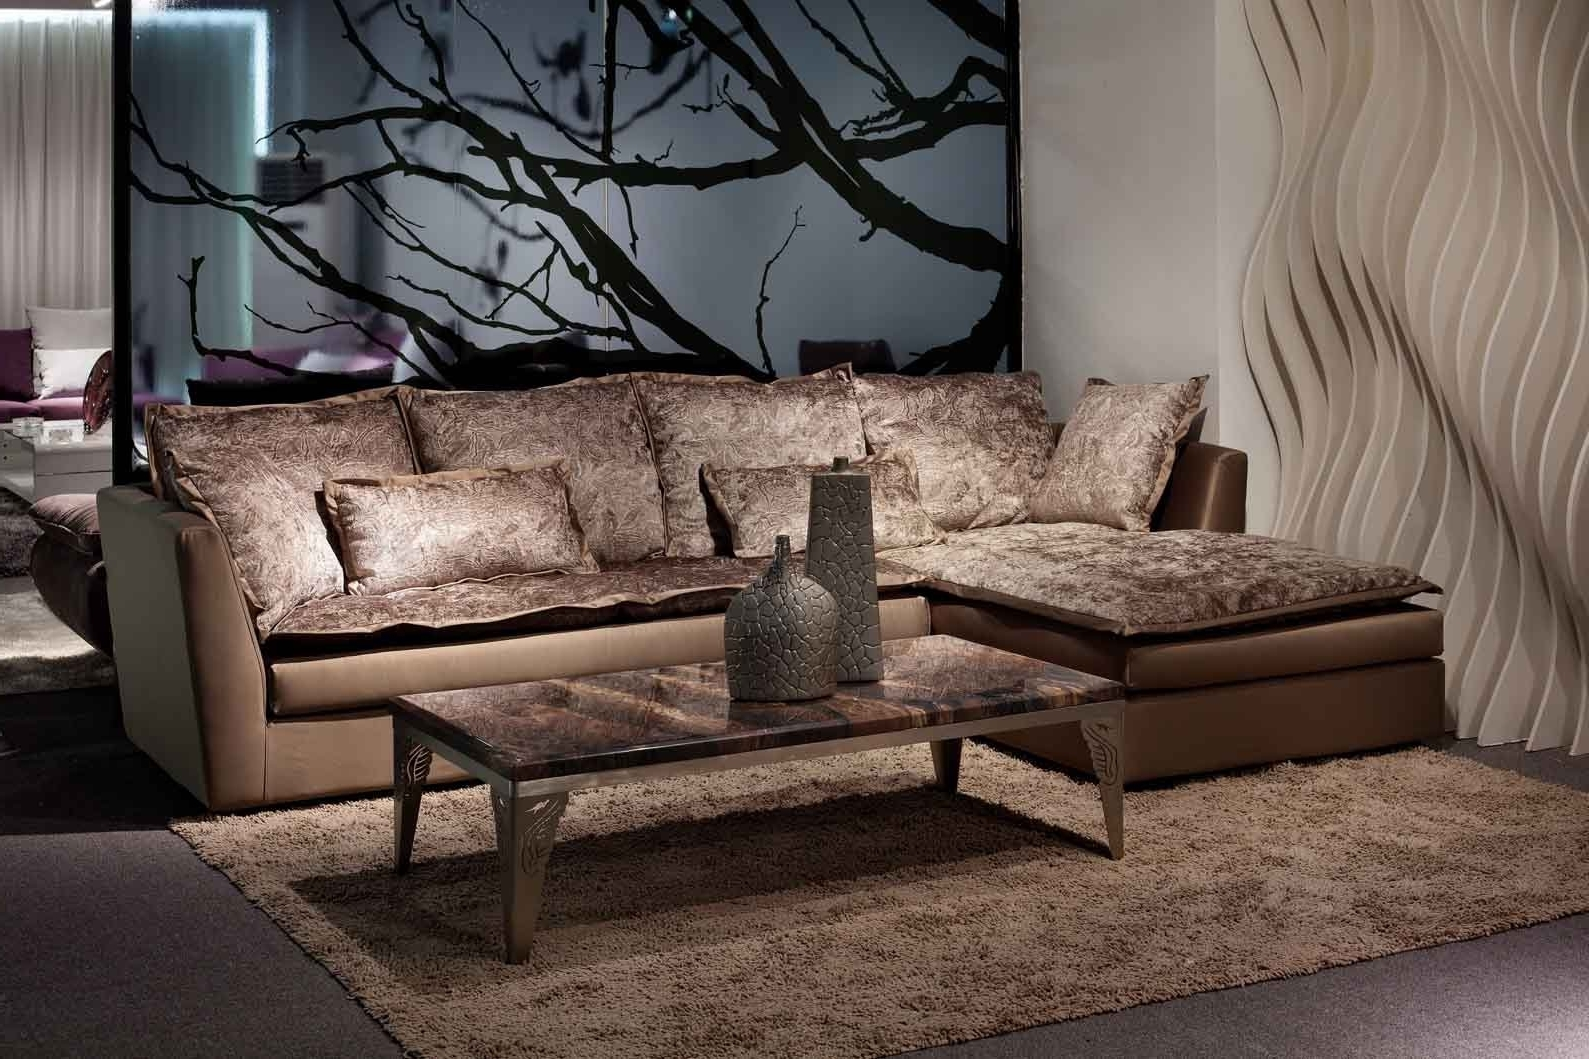 2018 Couch: Astounding Deals On Couches Best Deal On Couches, Overstock Pertaining To Sydney Sectional Sofas (View 1 of 20)